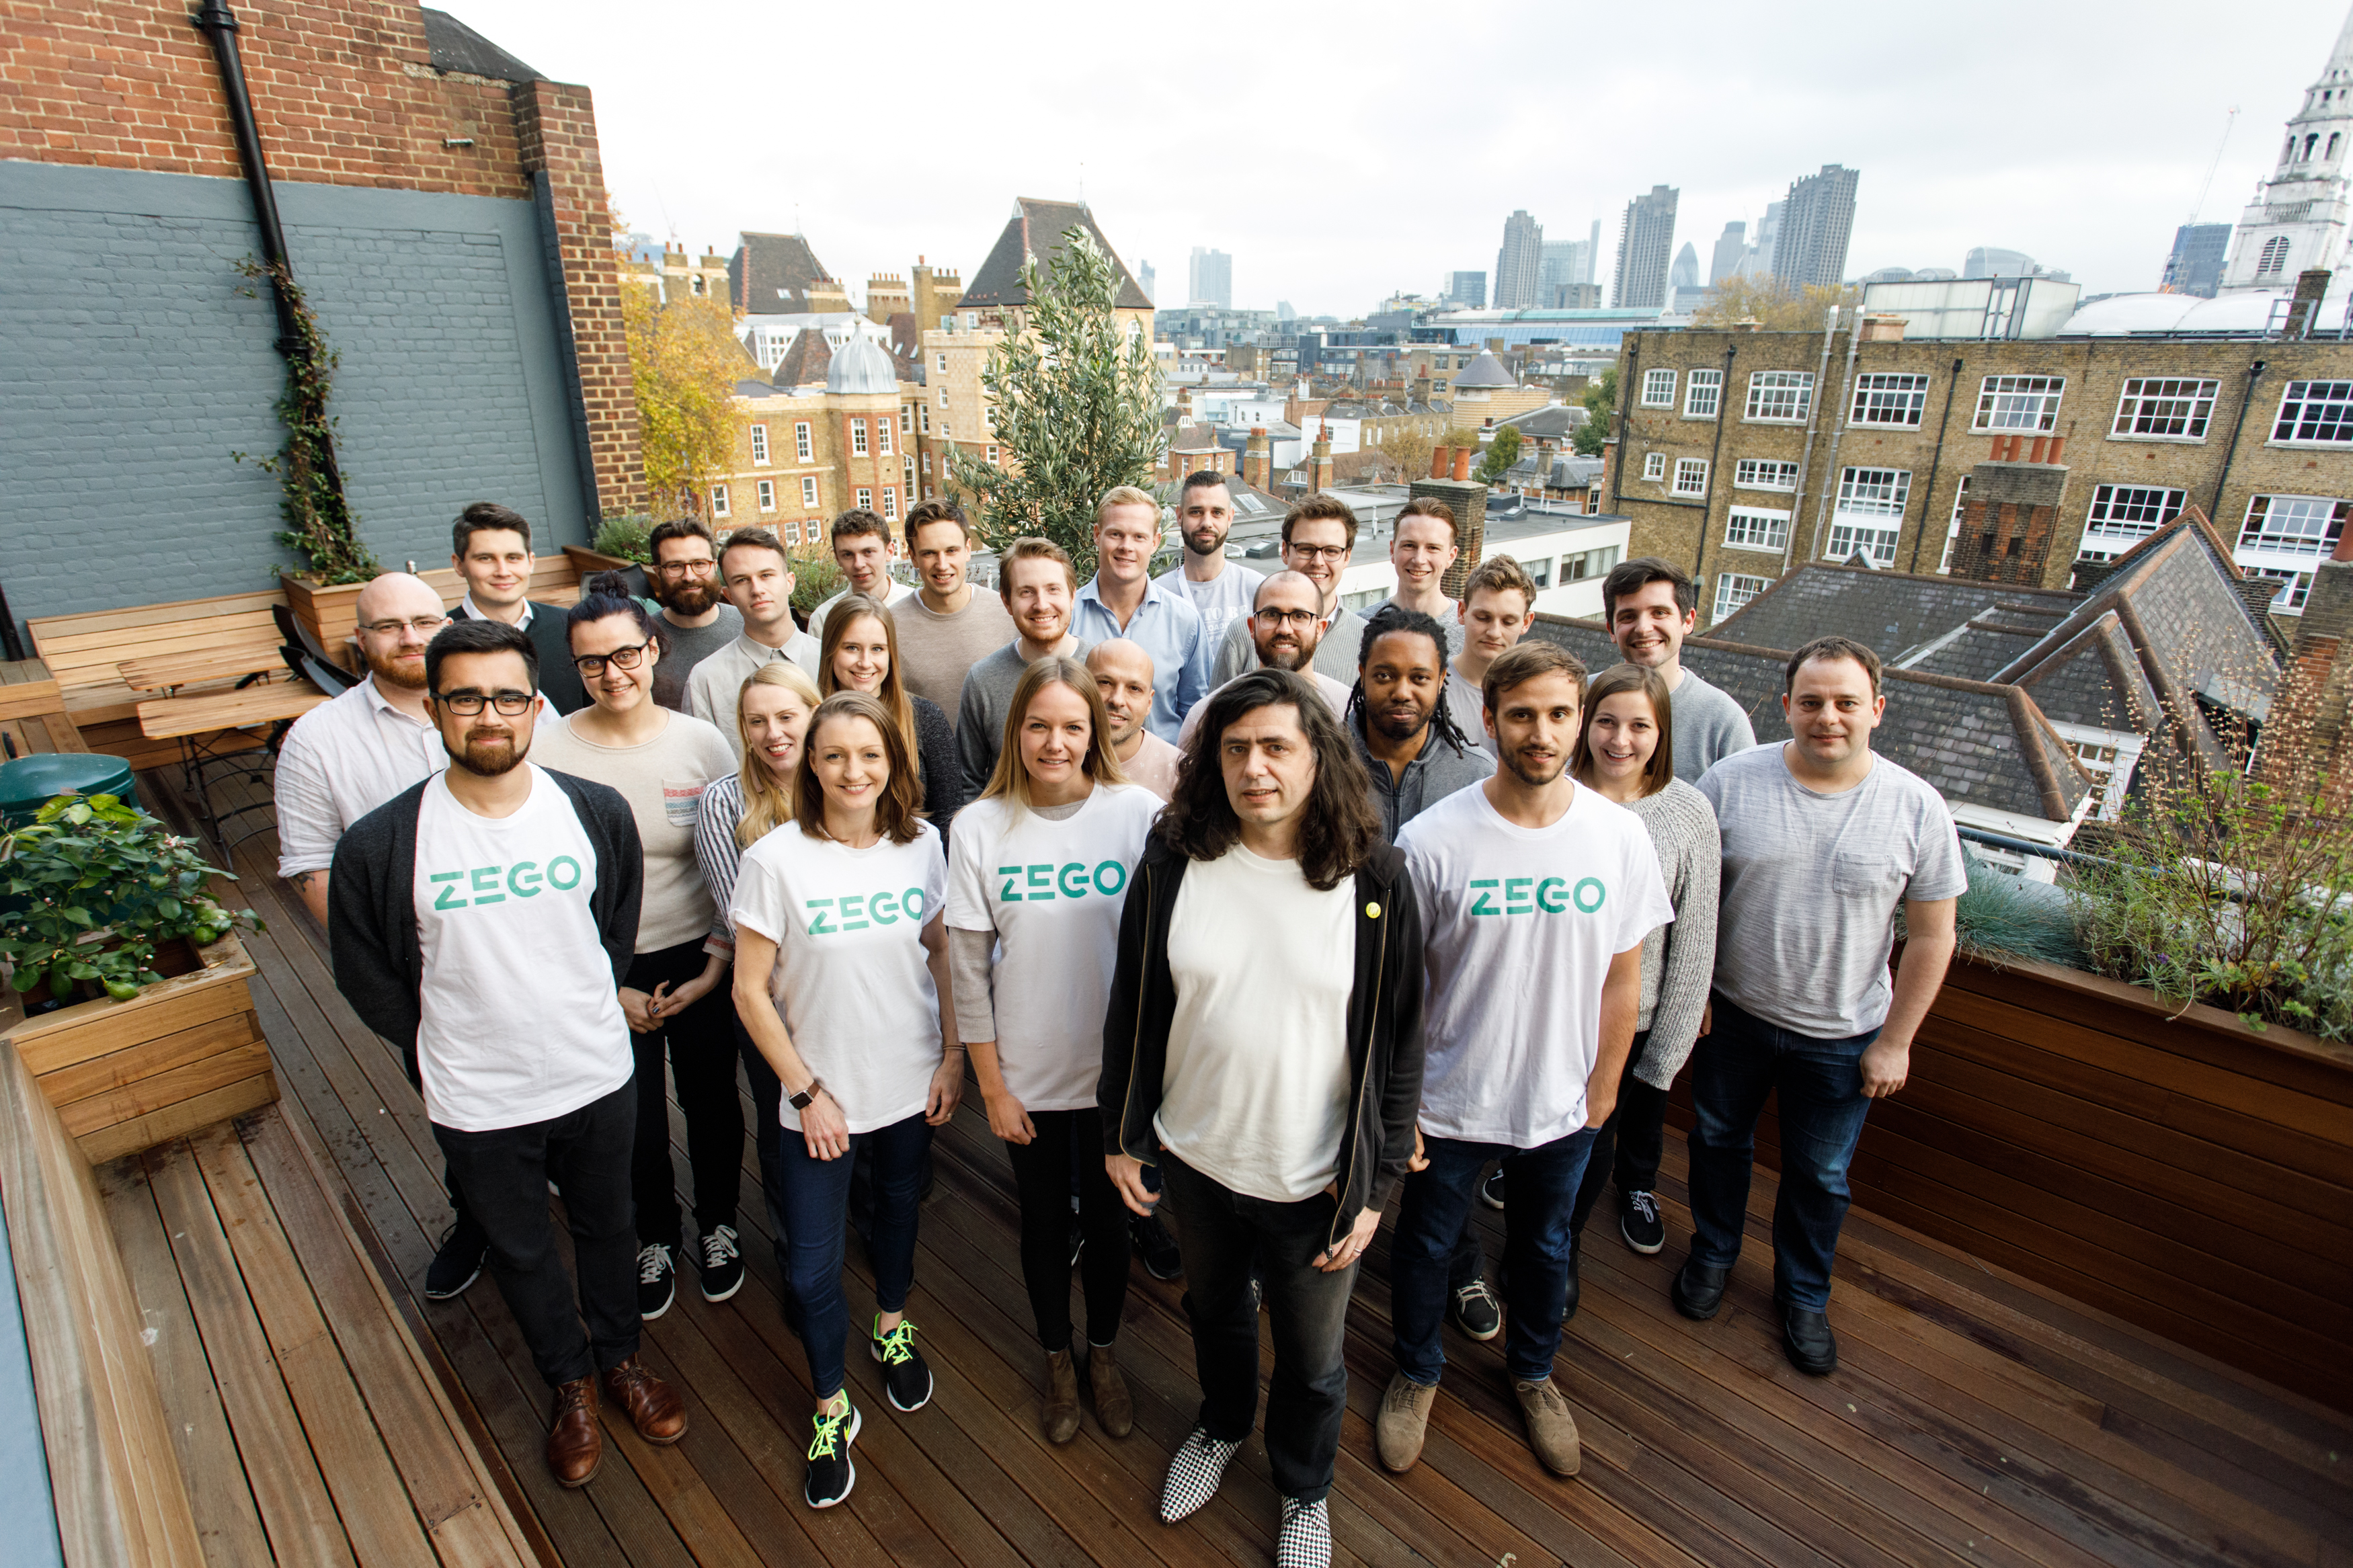 Zego picks up £6M Series A led by Balderton for its gig economy